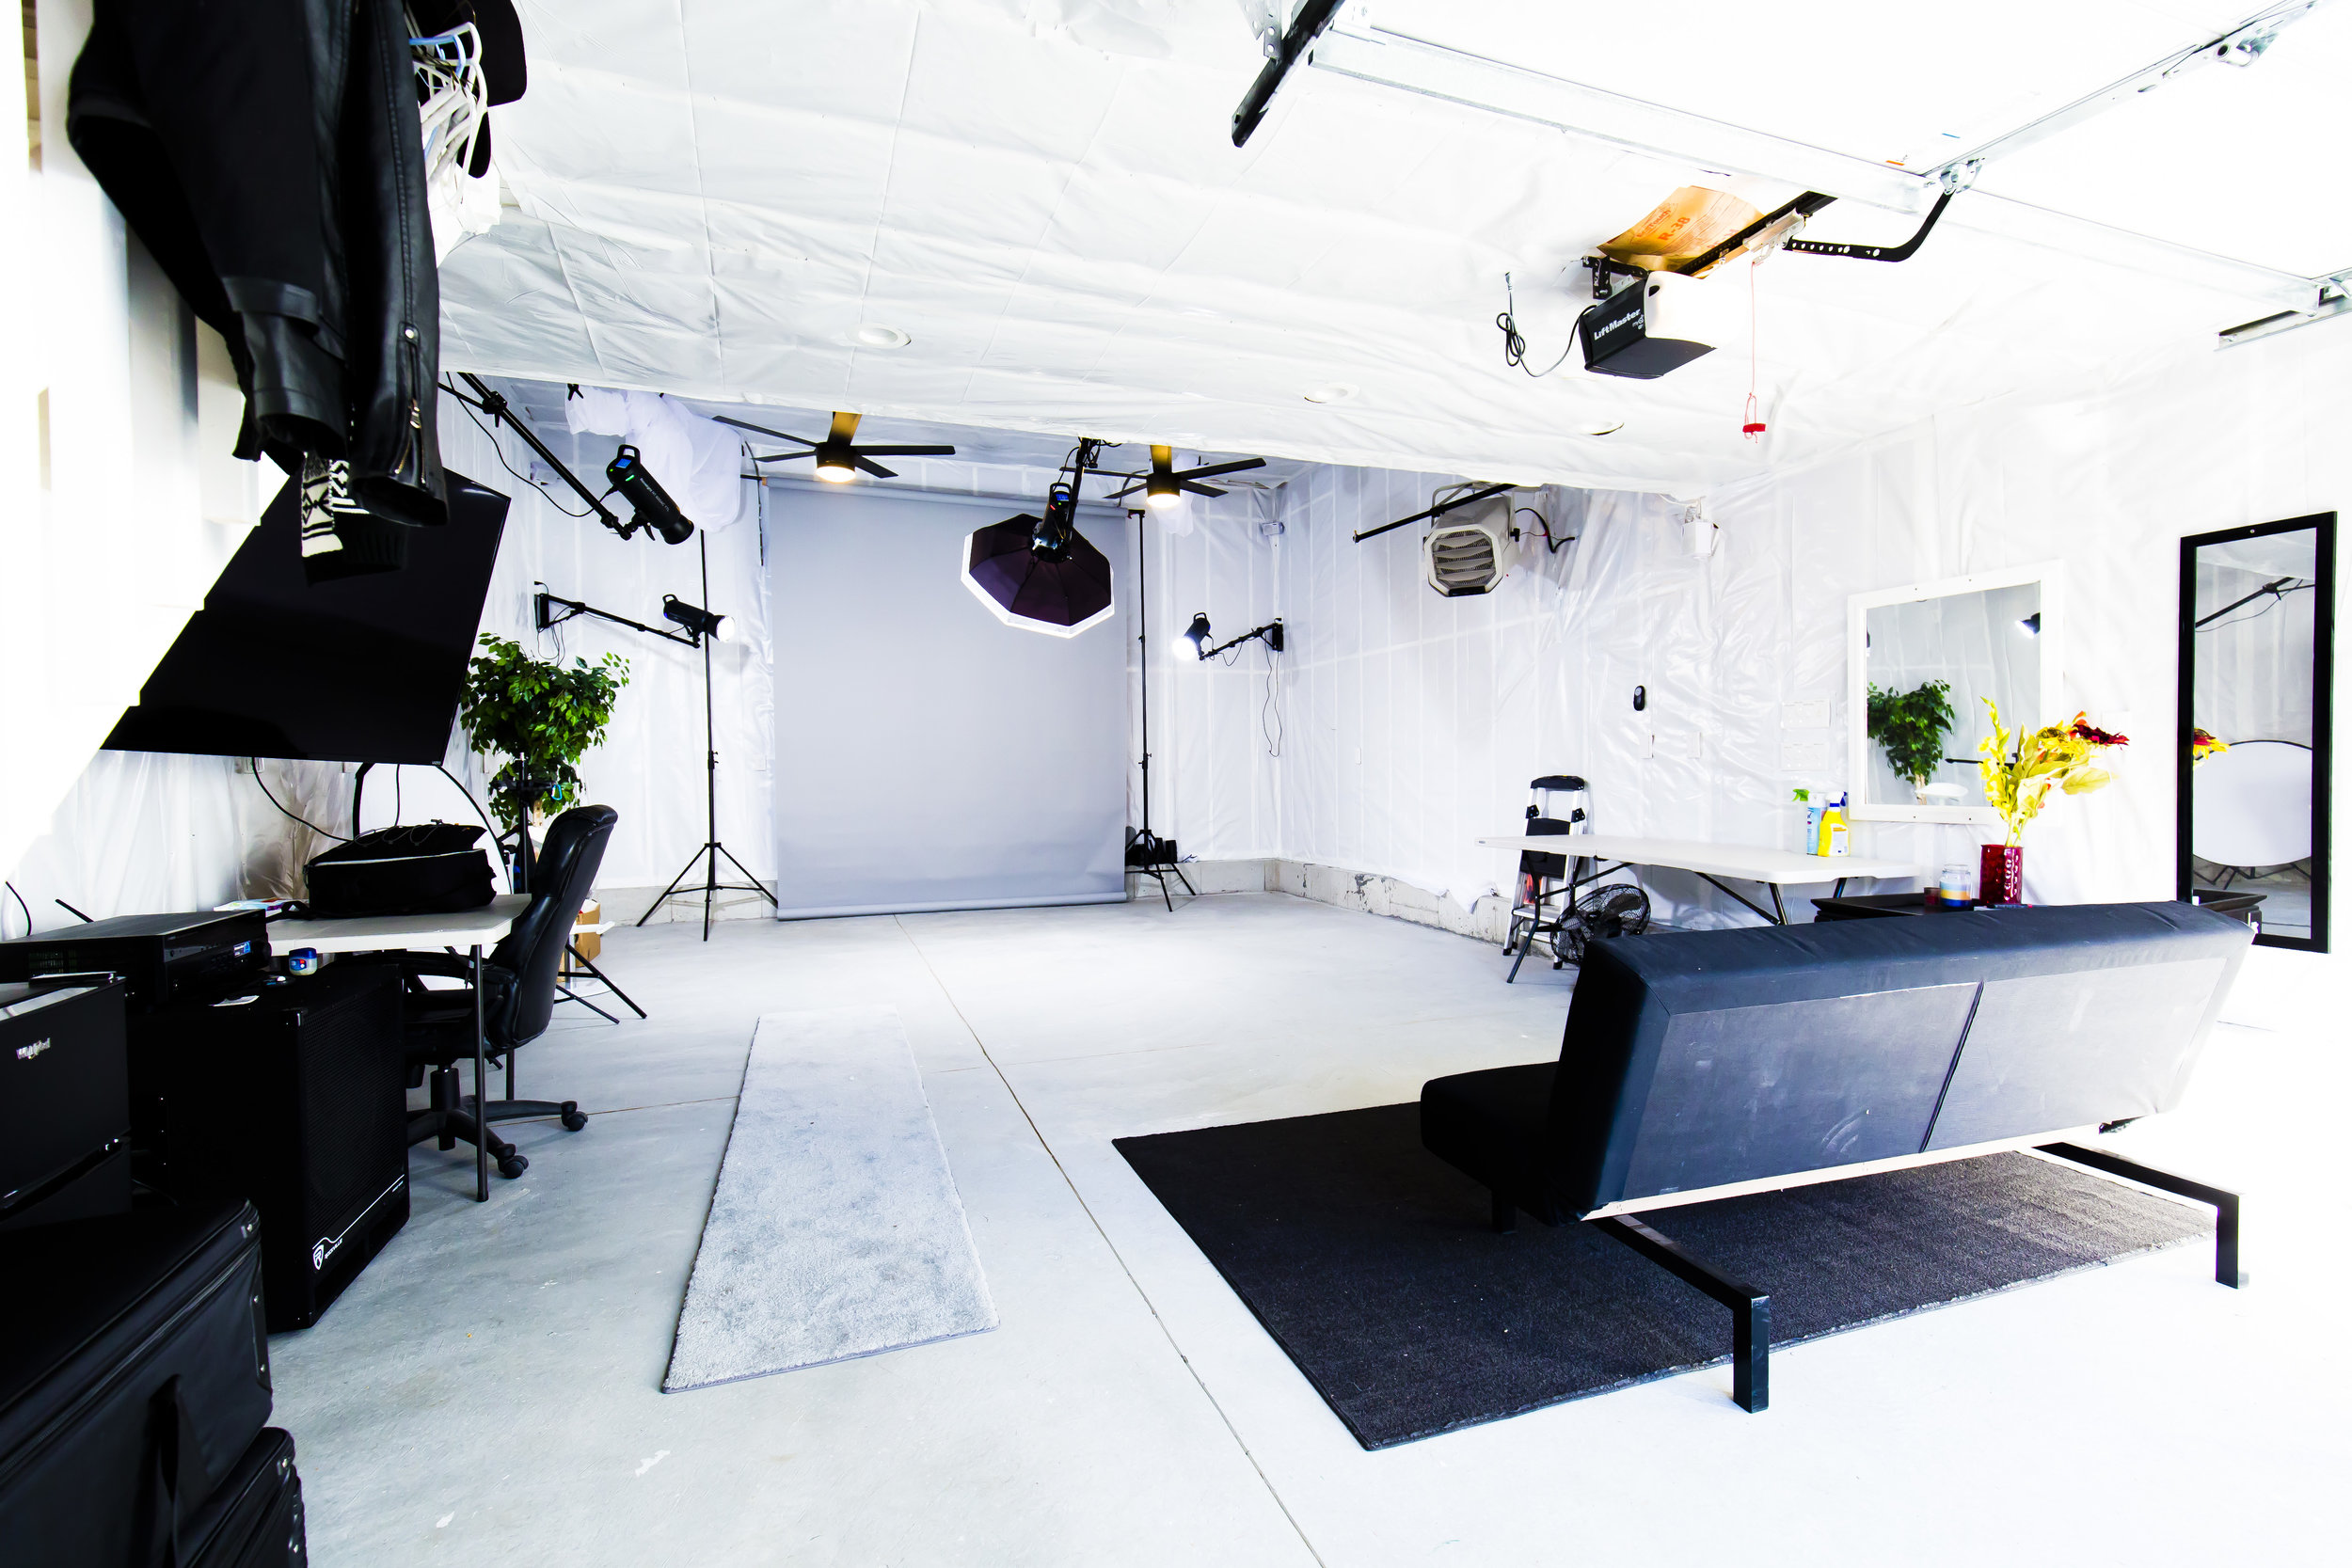 314A1173-Boston Studio Rental-Photography - Videography - Film - Event space - Affordable.jpg